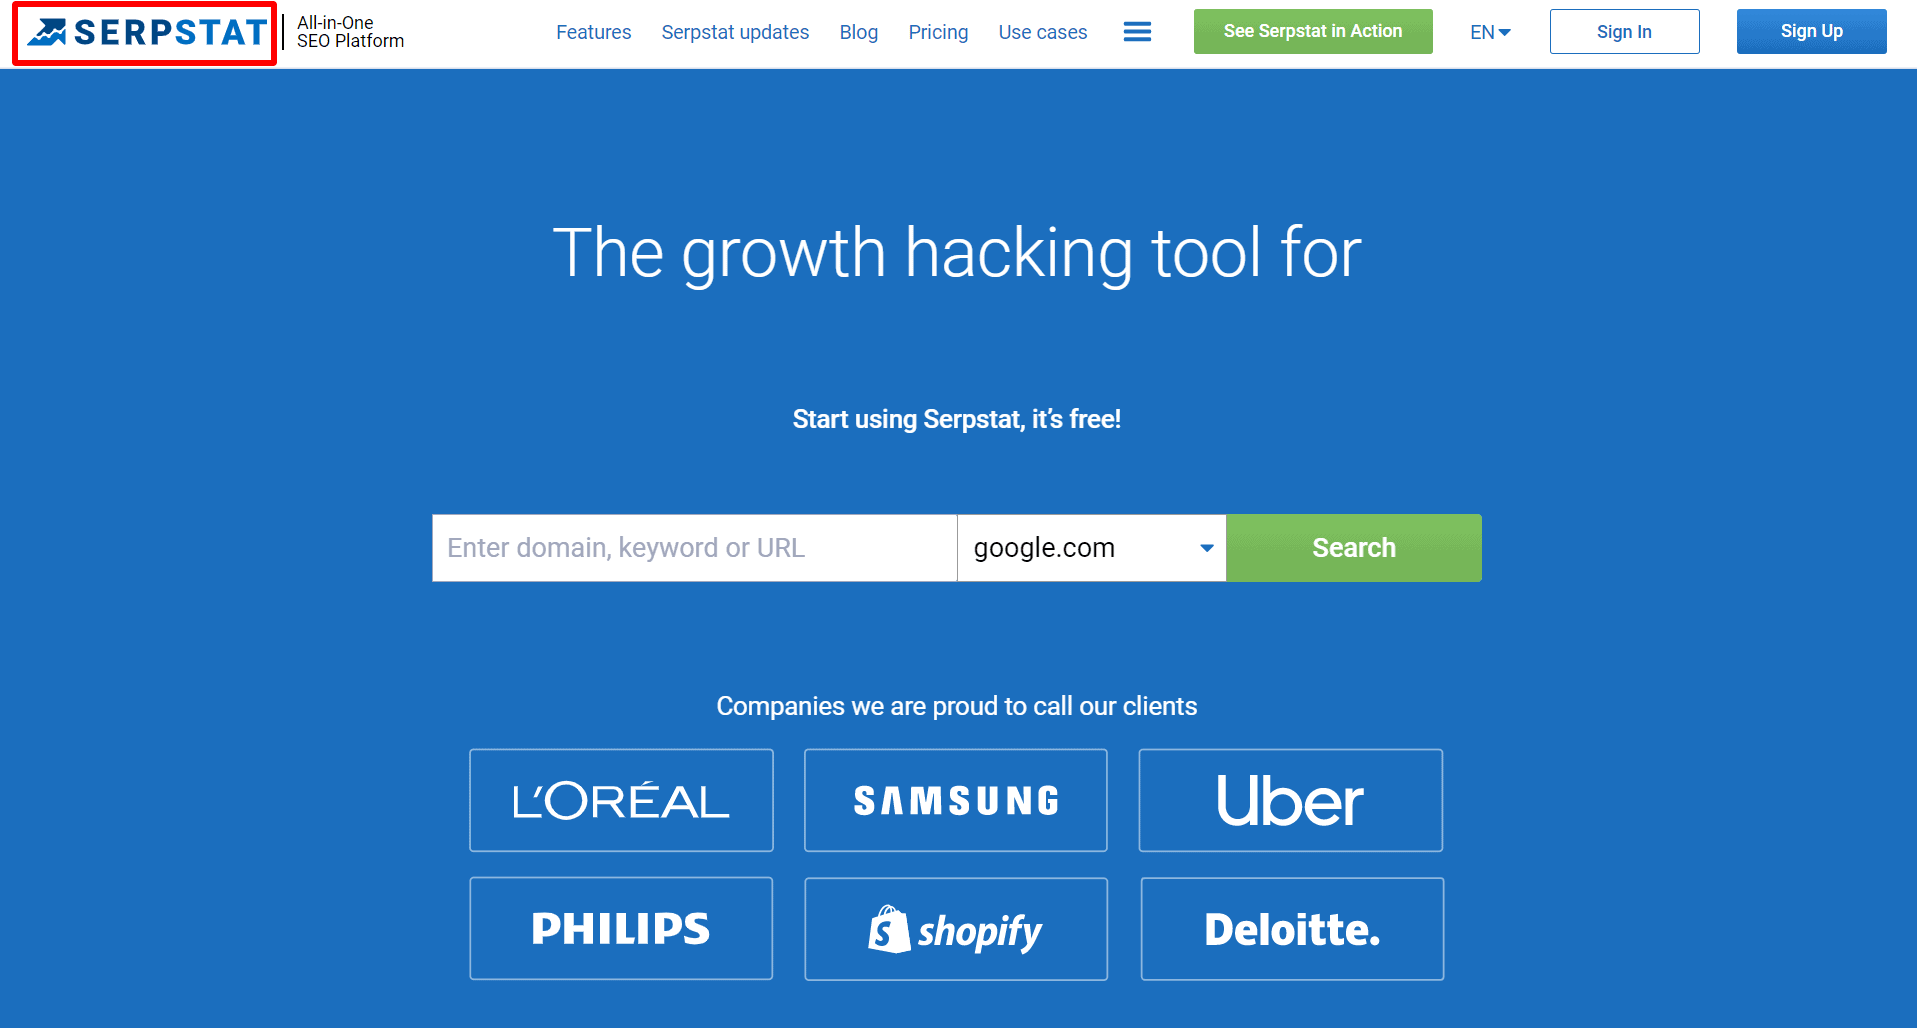 Serpstat-—-Growth-hacking-tool-for-SEO-PPC-and-content-marketing